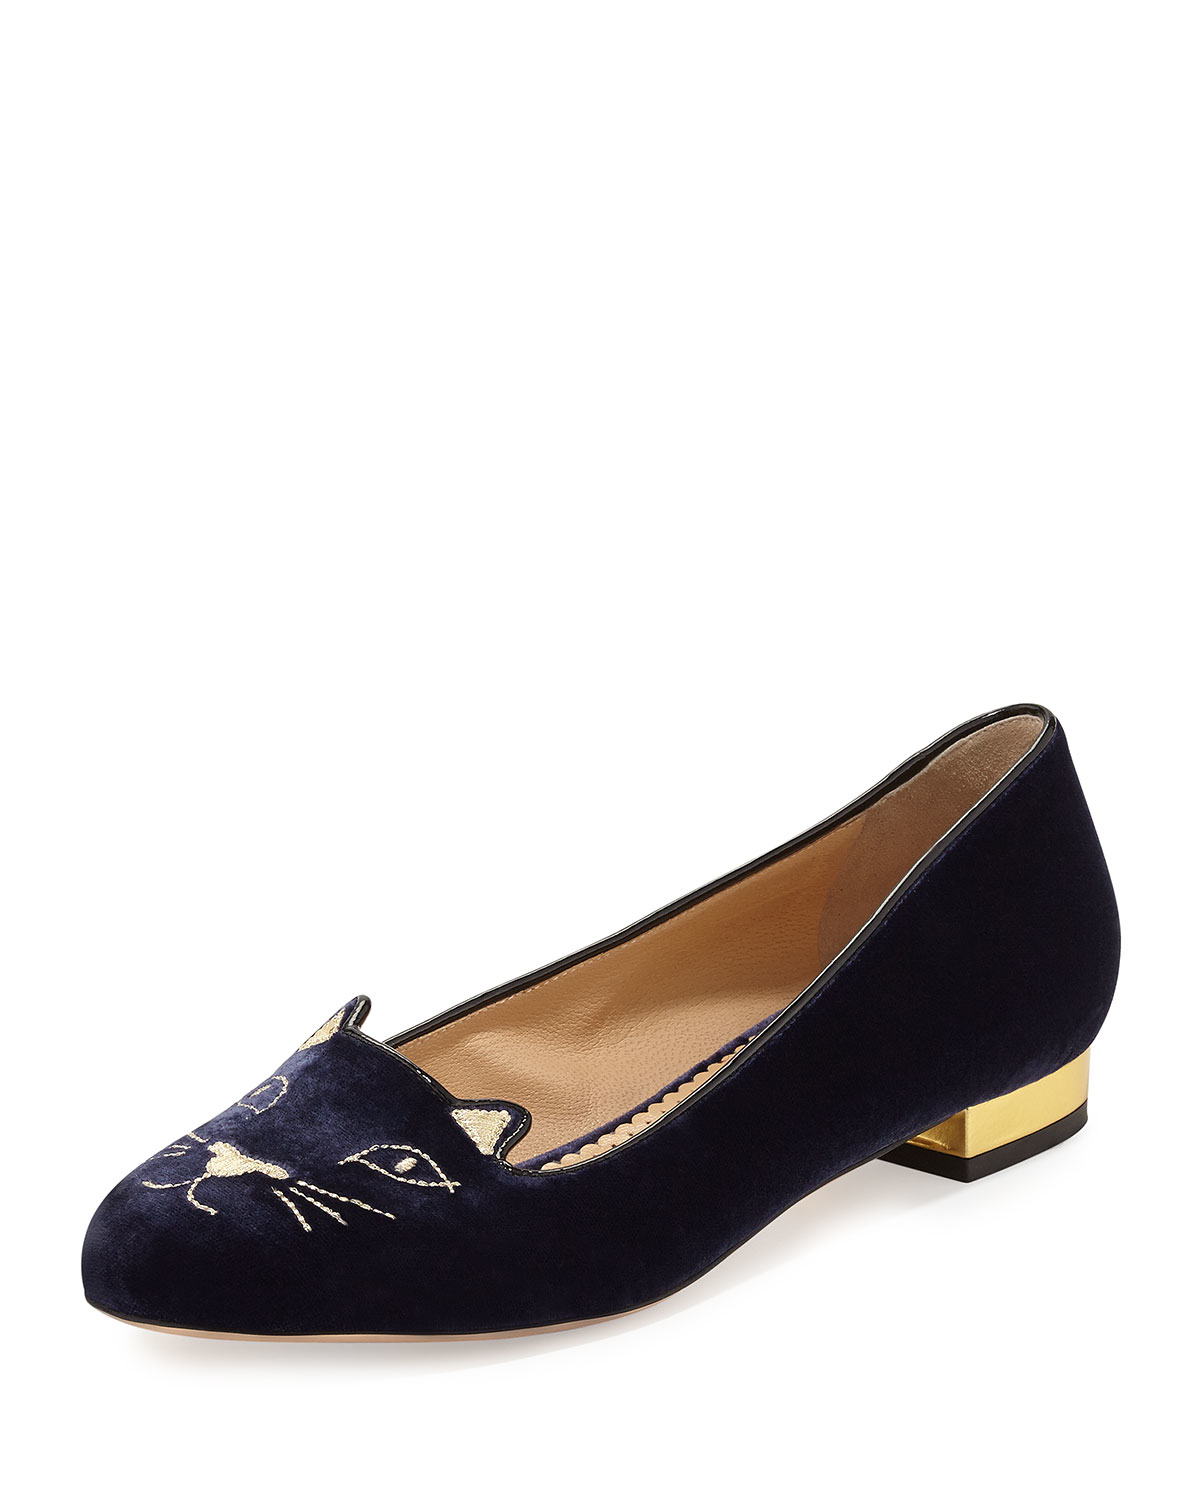 Charlotte Olympia Kitty Flat Shoes